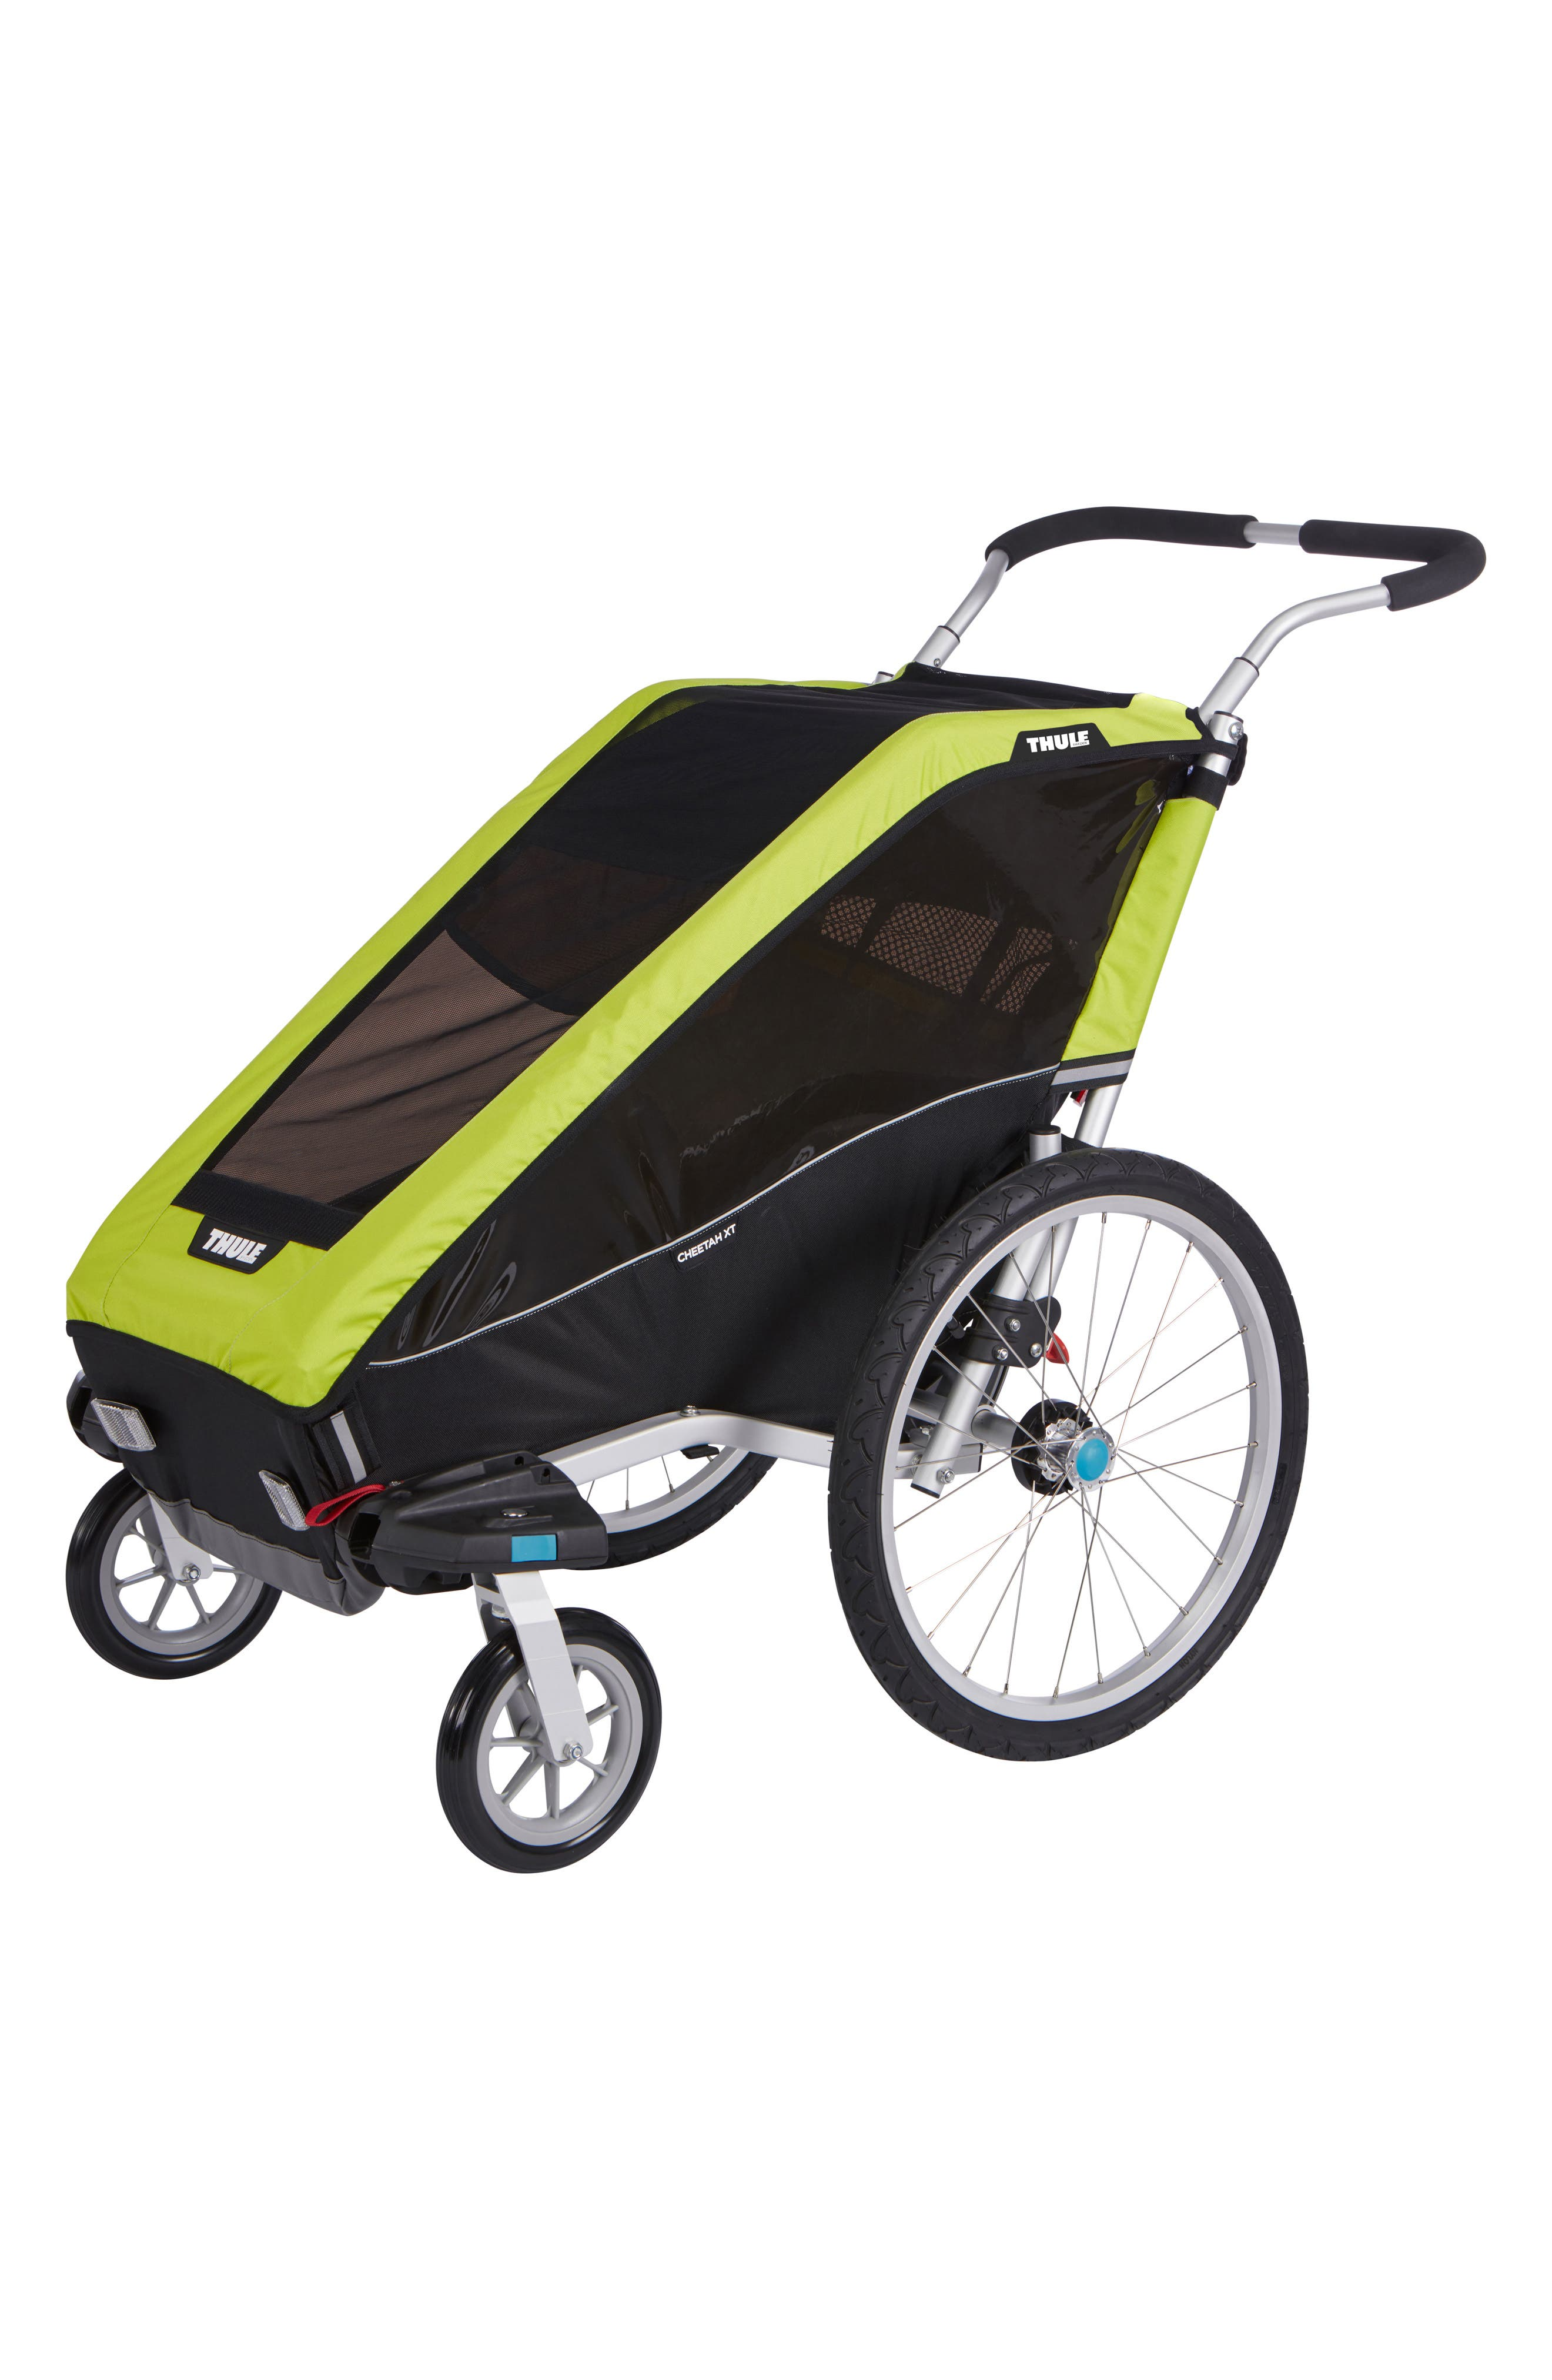 Thule Chariot Cheetah XT 2 Multisport Cycle Trailer/Stroller